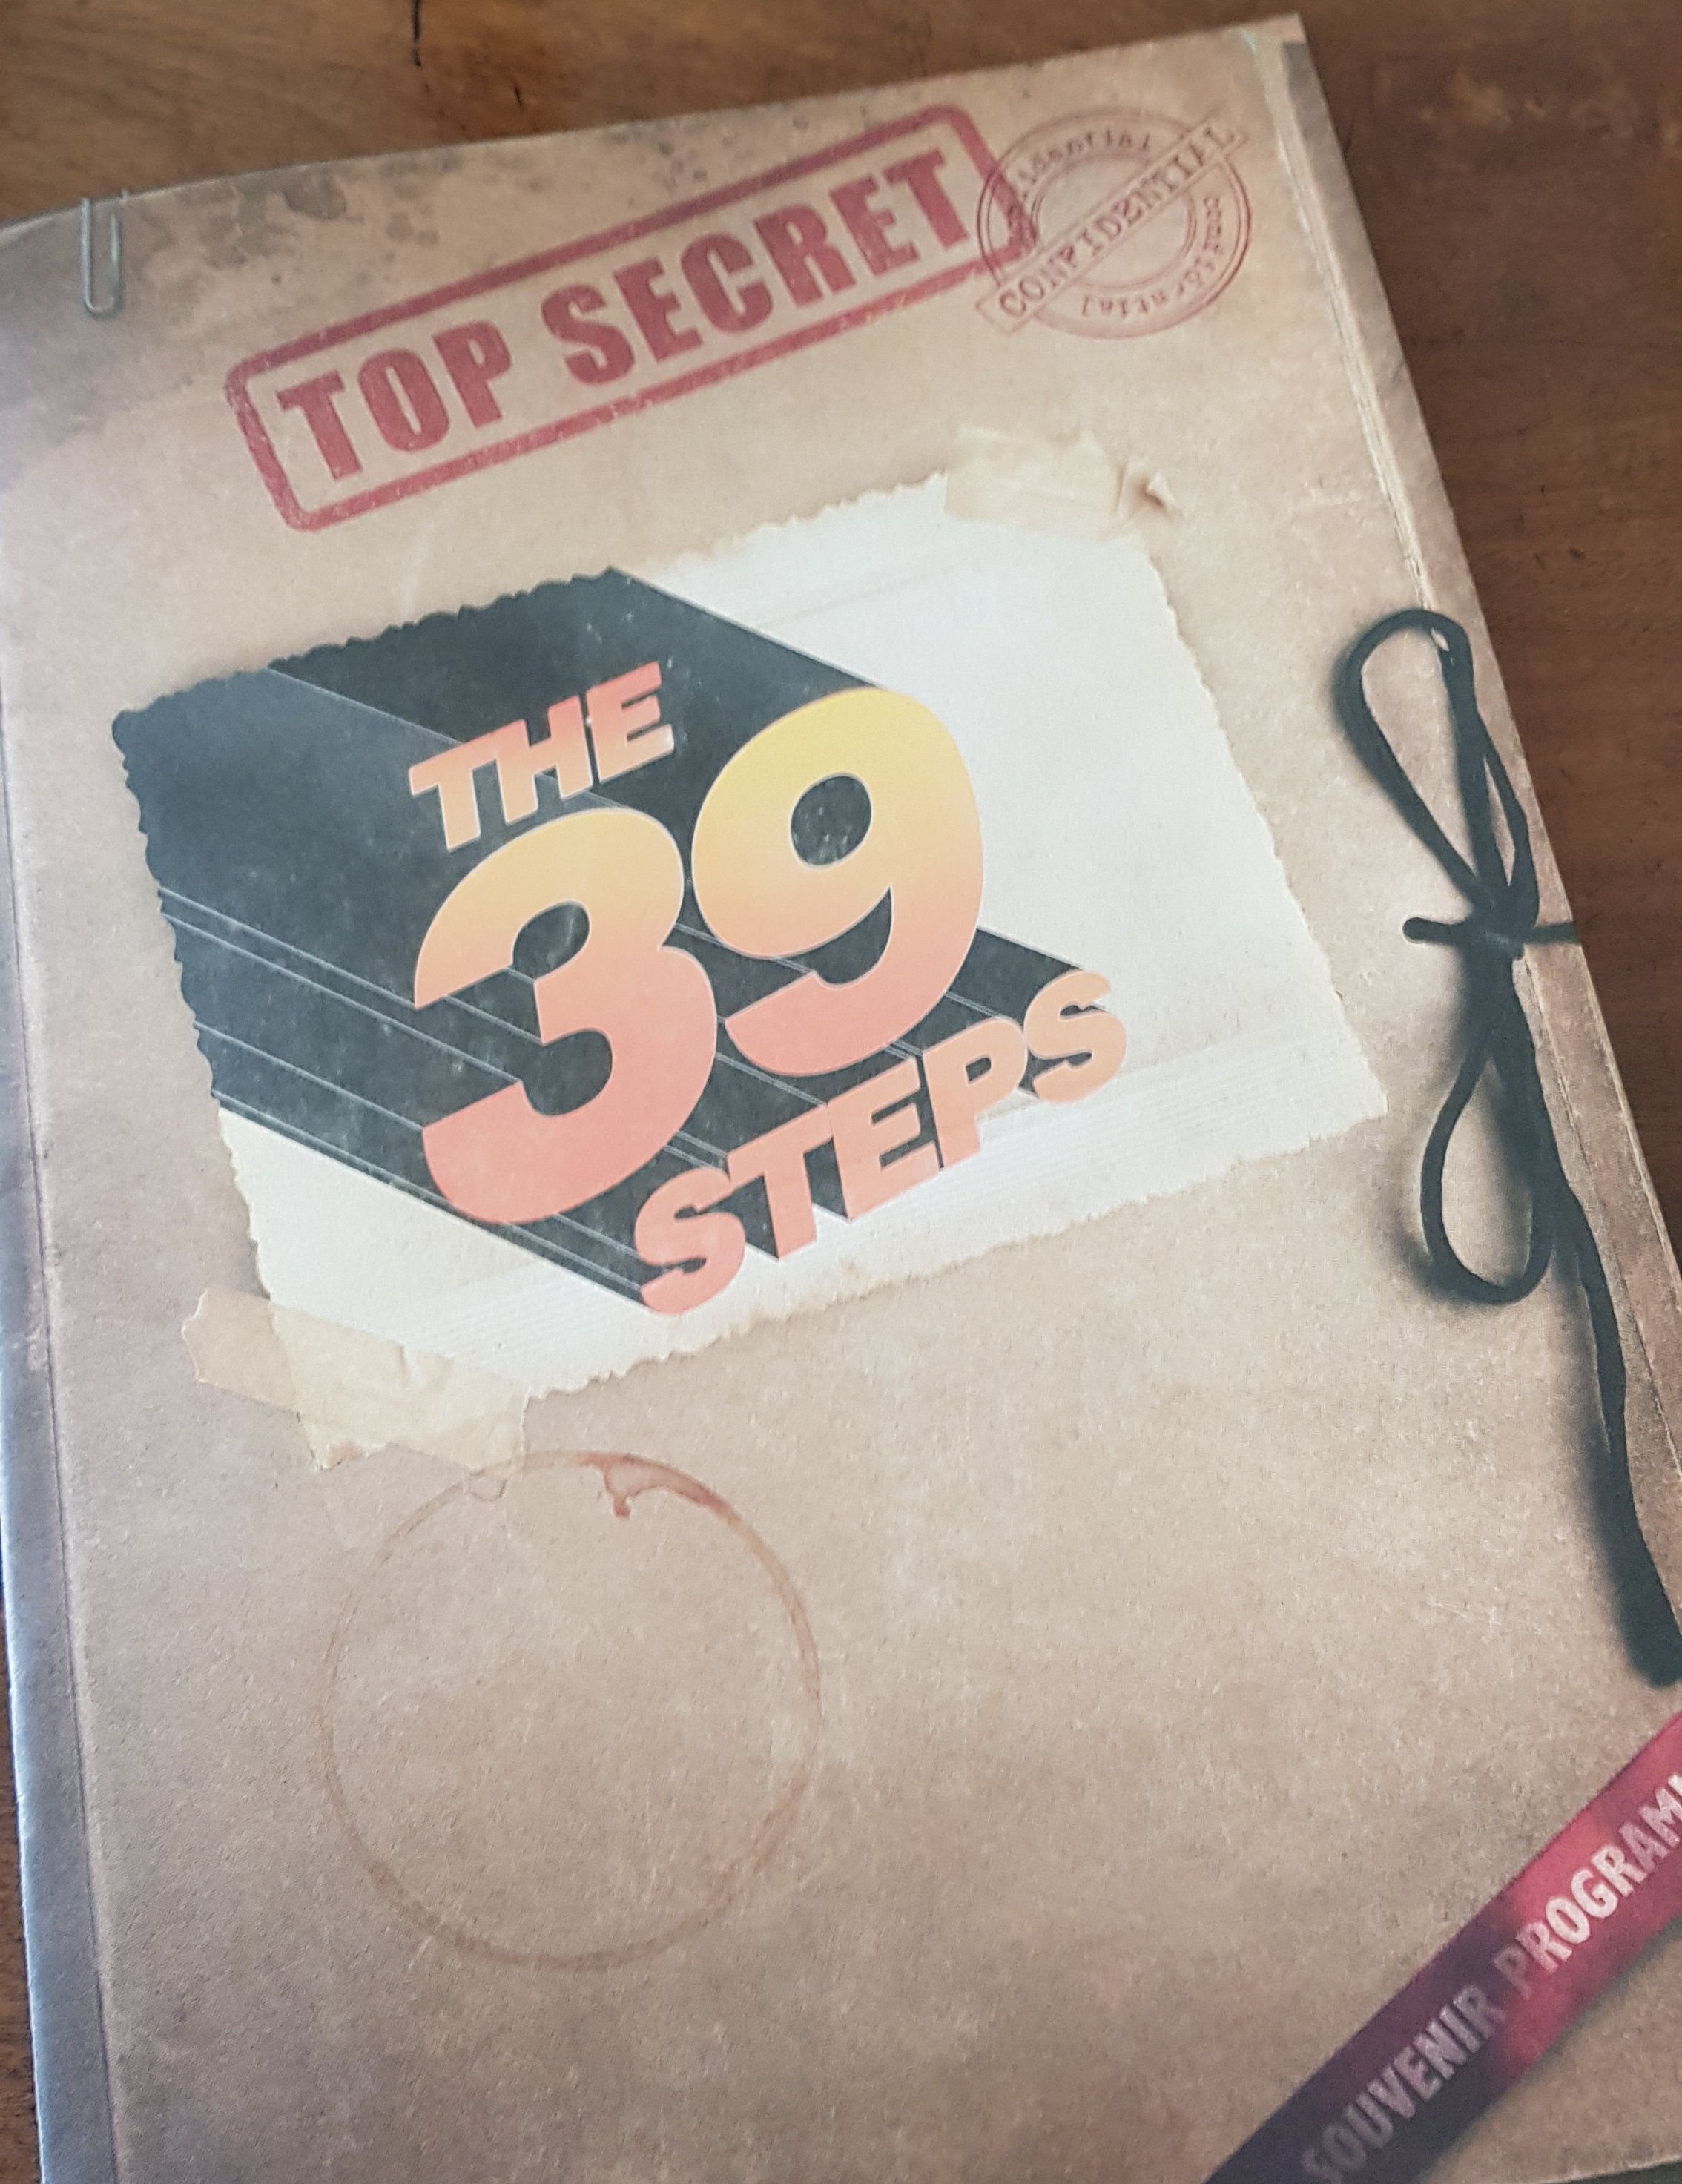 The 39 Steps production at Eastbourne Theatres